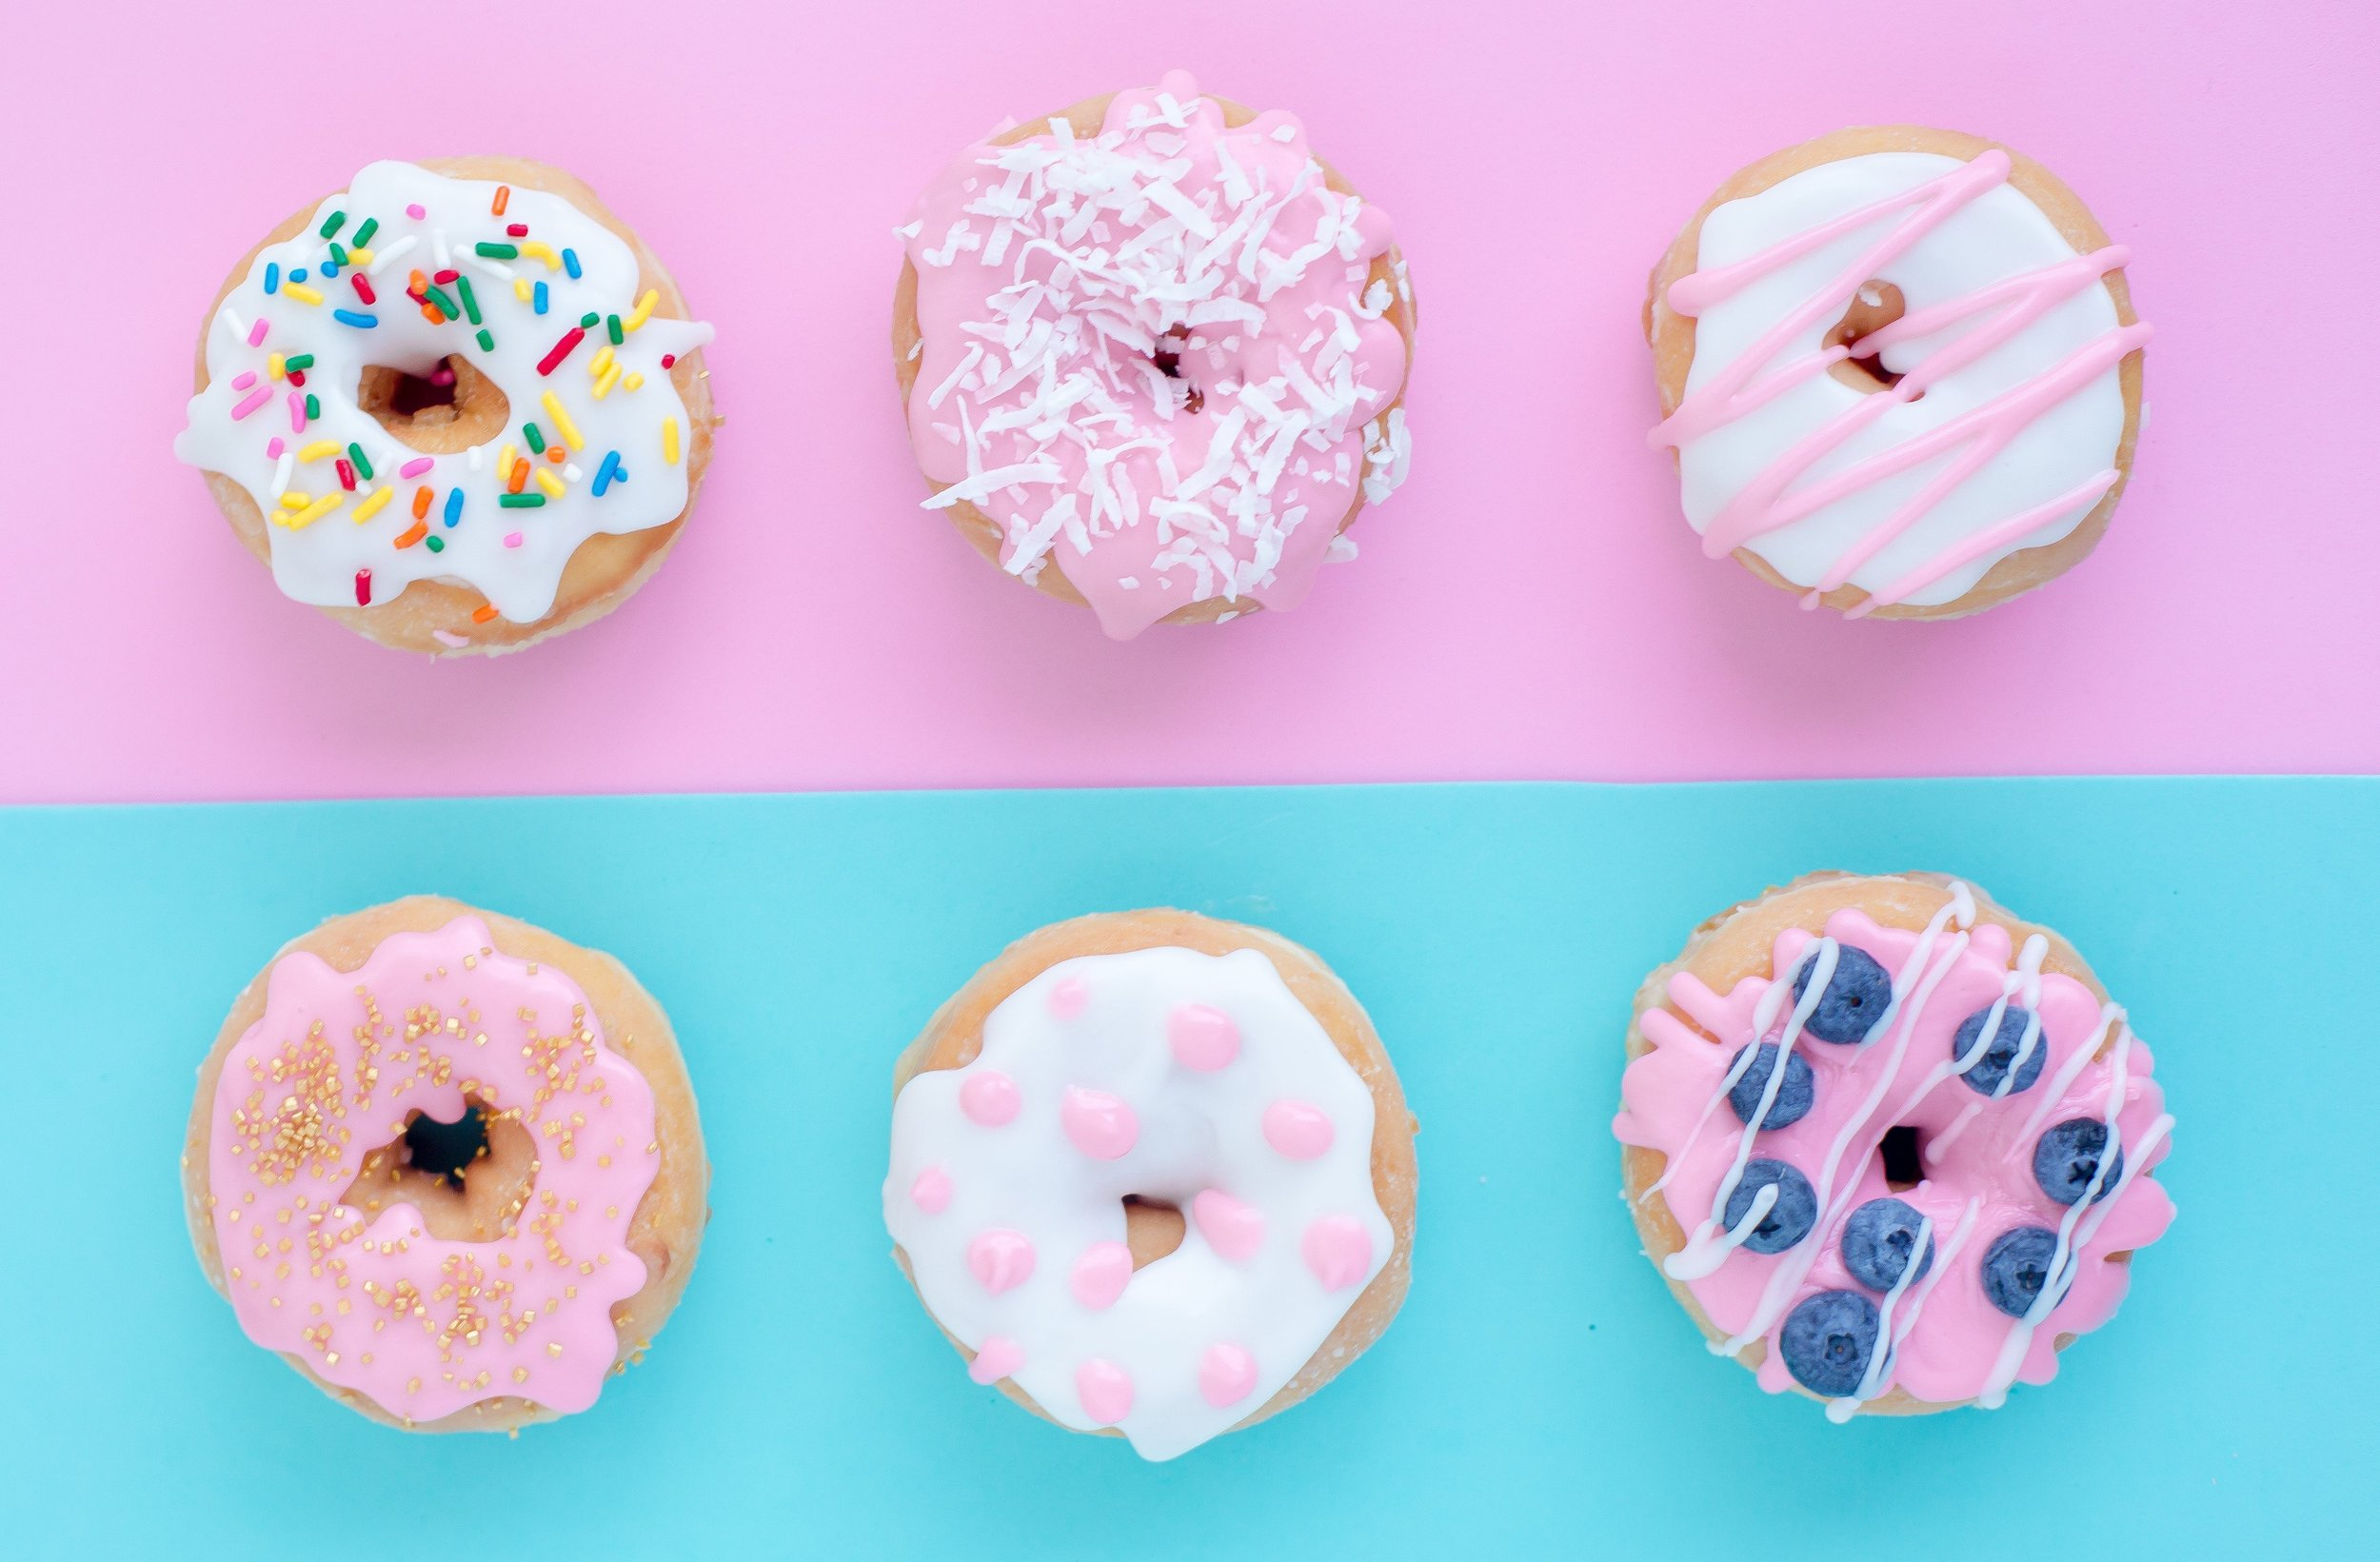 SAY HELLO OR SEND US DONUTS - Do you have any questions or want to take your social influence to the next level? Let's connect and discuss more.Or just say hello. We do accept donuts as gifts because they are yummy.